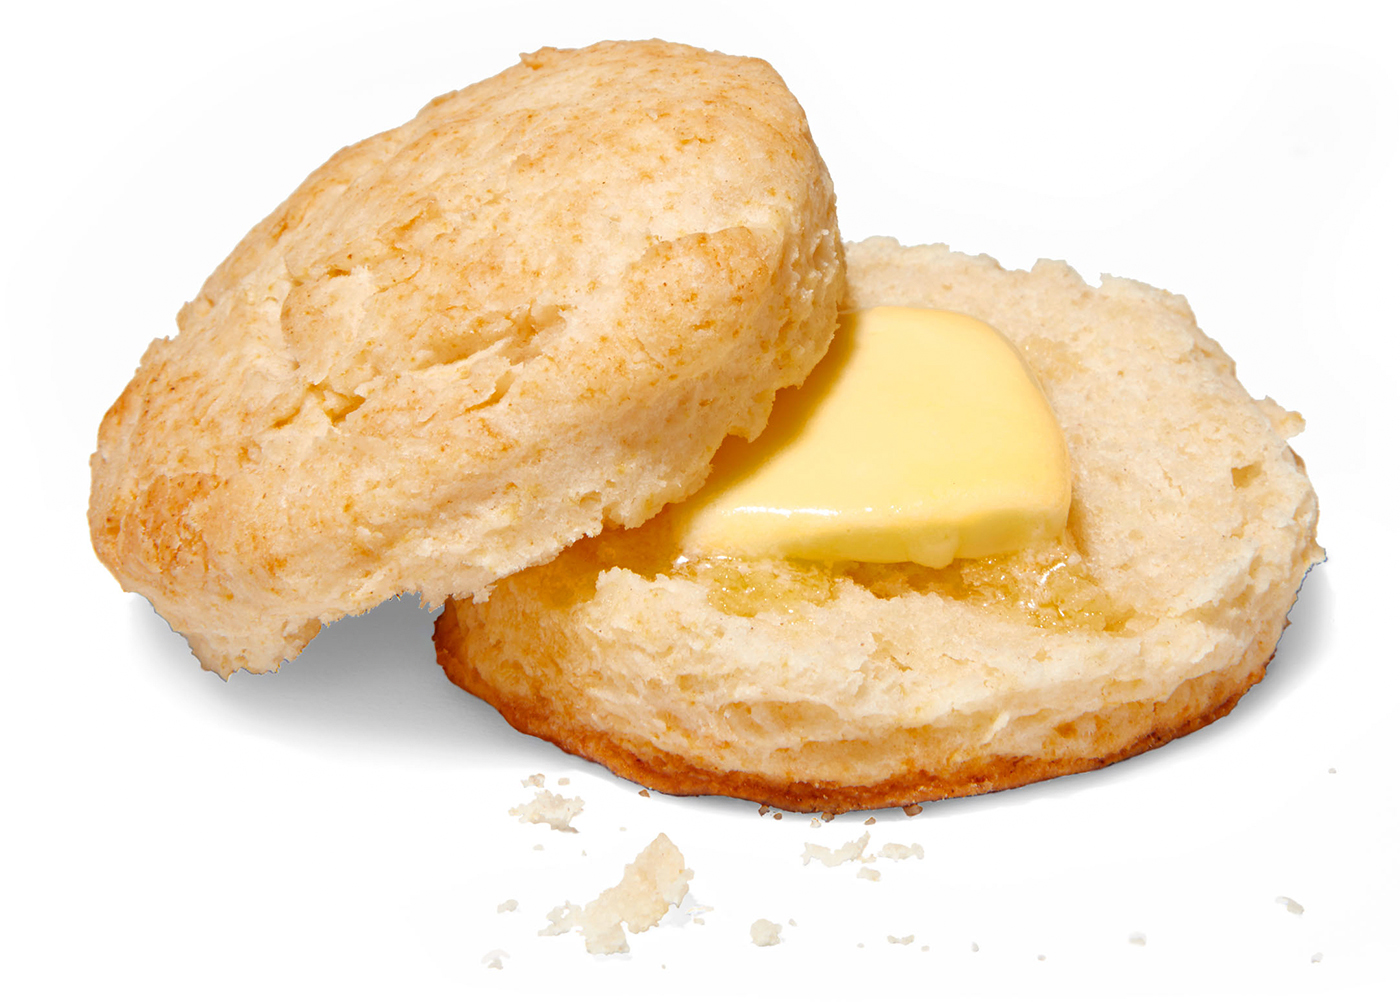 sliced biscuit with butter